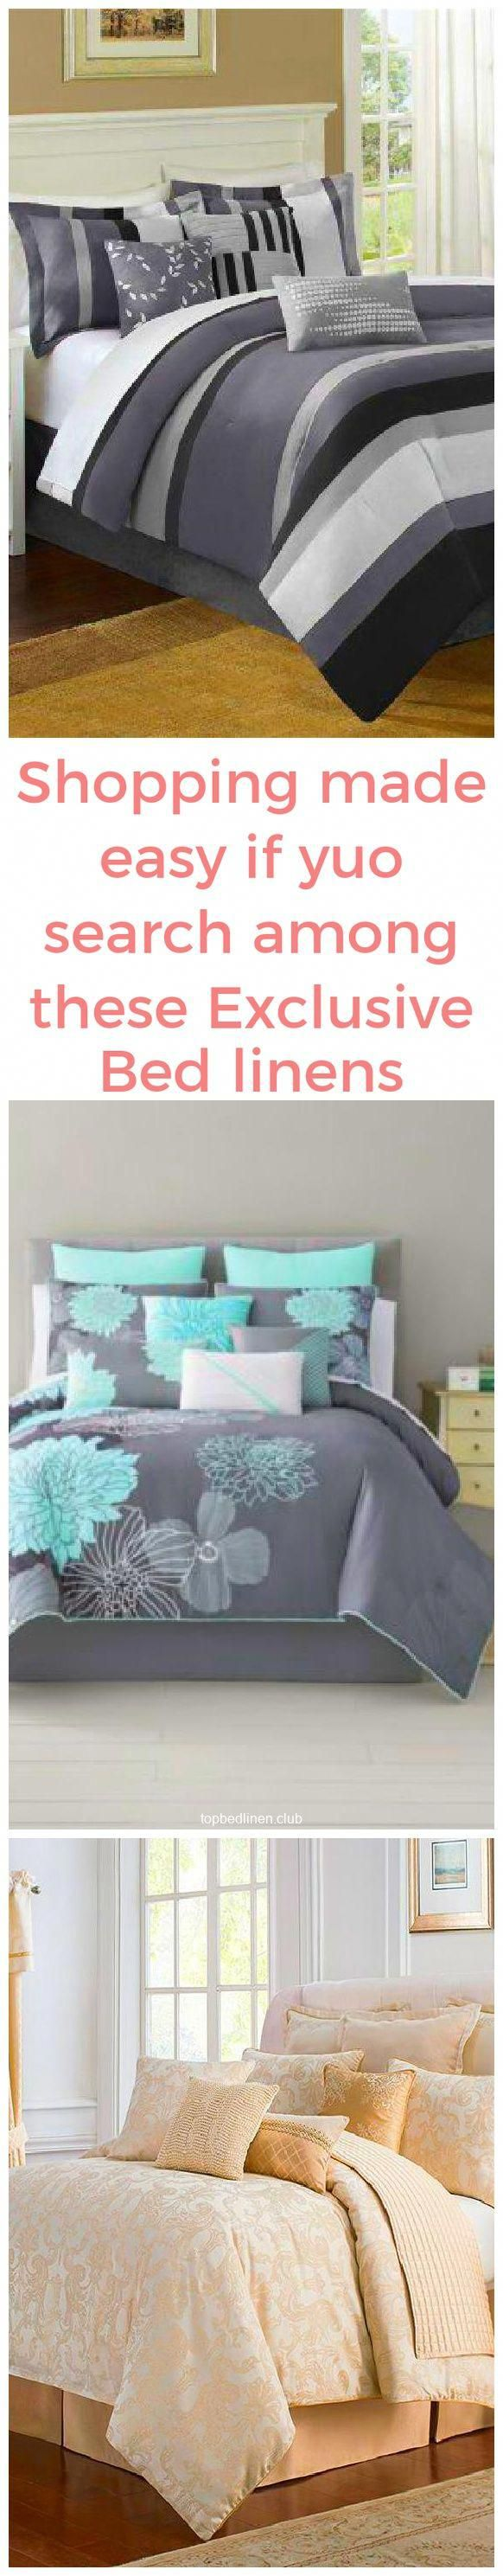 Photo of Bedding Comforter Sets Twin #FascinatingBedroomIdeas Post:4031802346 #CoolBedLin…